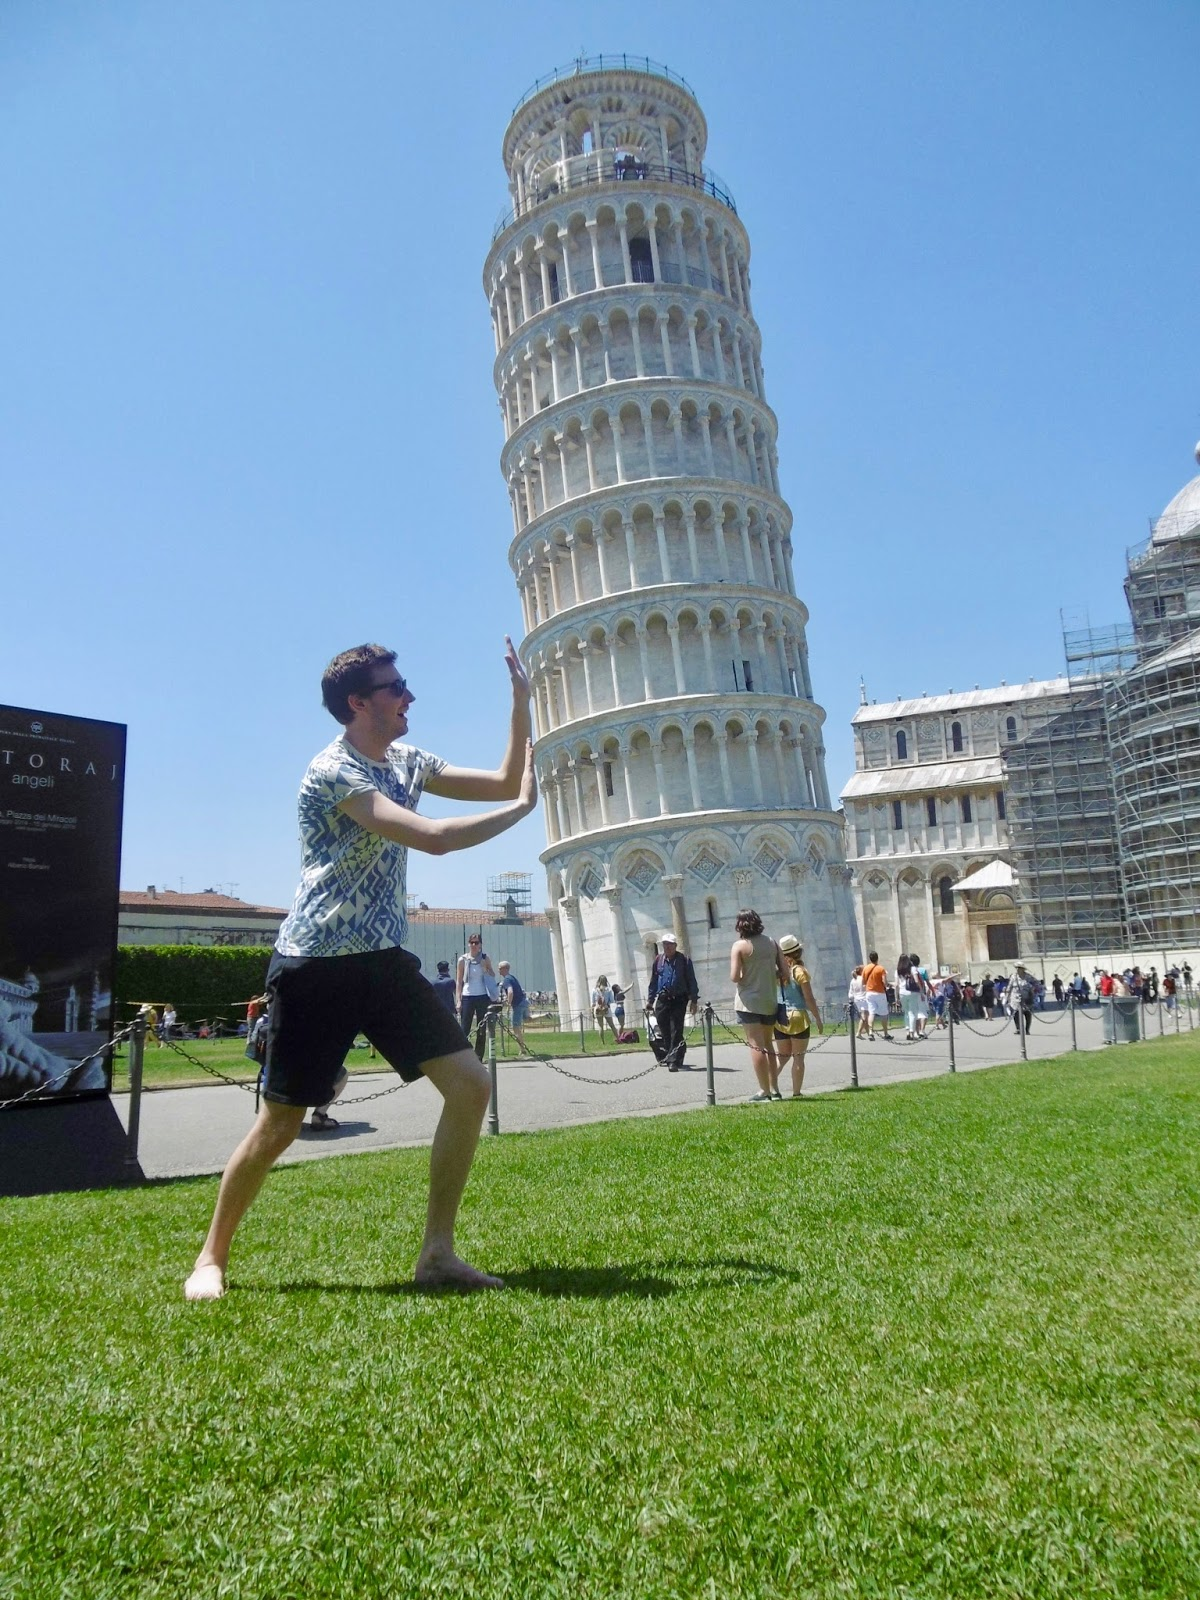 Pretending to hold up the leaning tower of Pisa ,  Cal McTravels